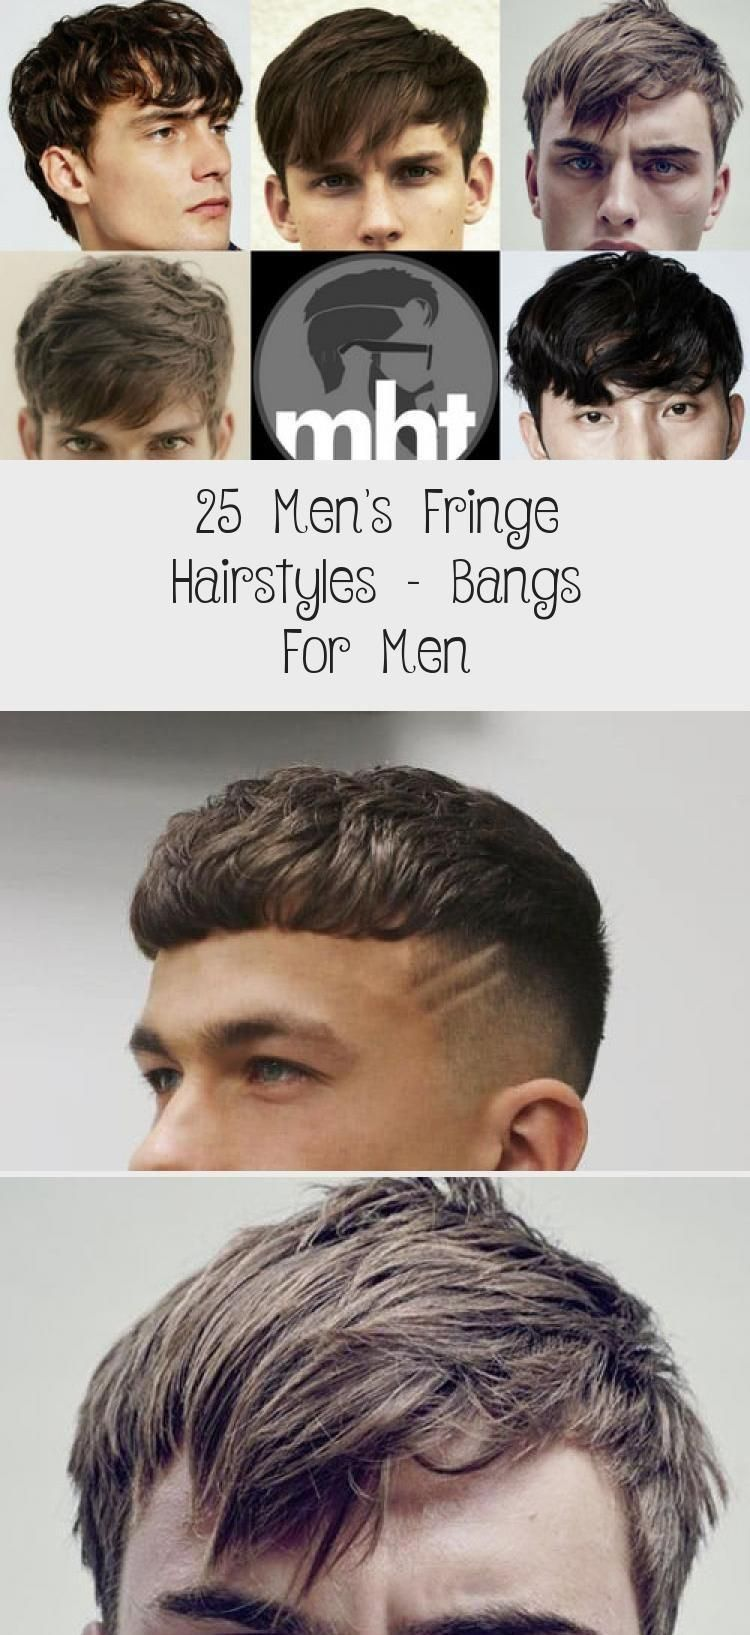 25 Herenkapsels Voor Mannen Pony Voor Mannen Kapsel Acconciature Con Frangia Tagli Di Capelli Acconciature